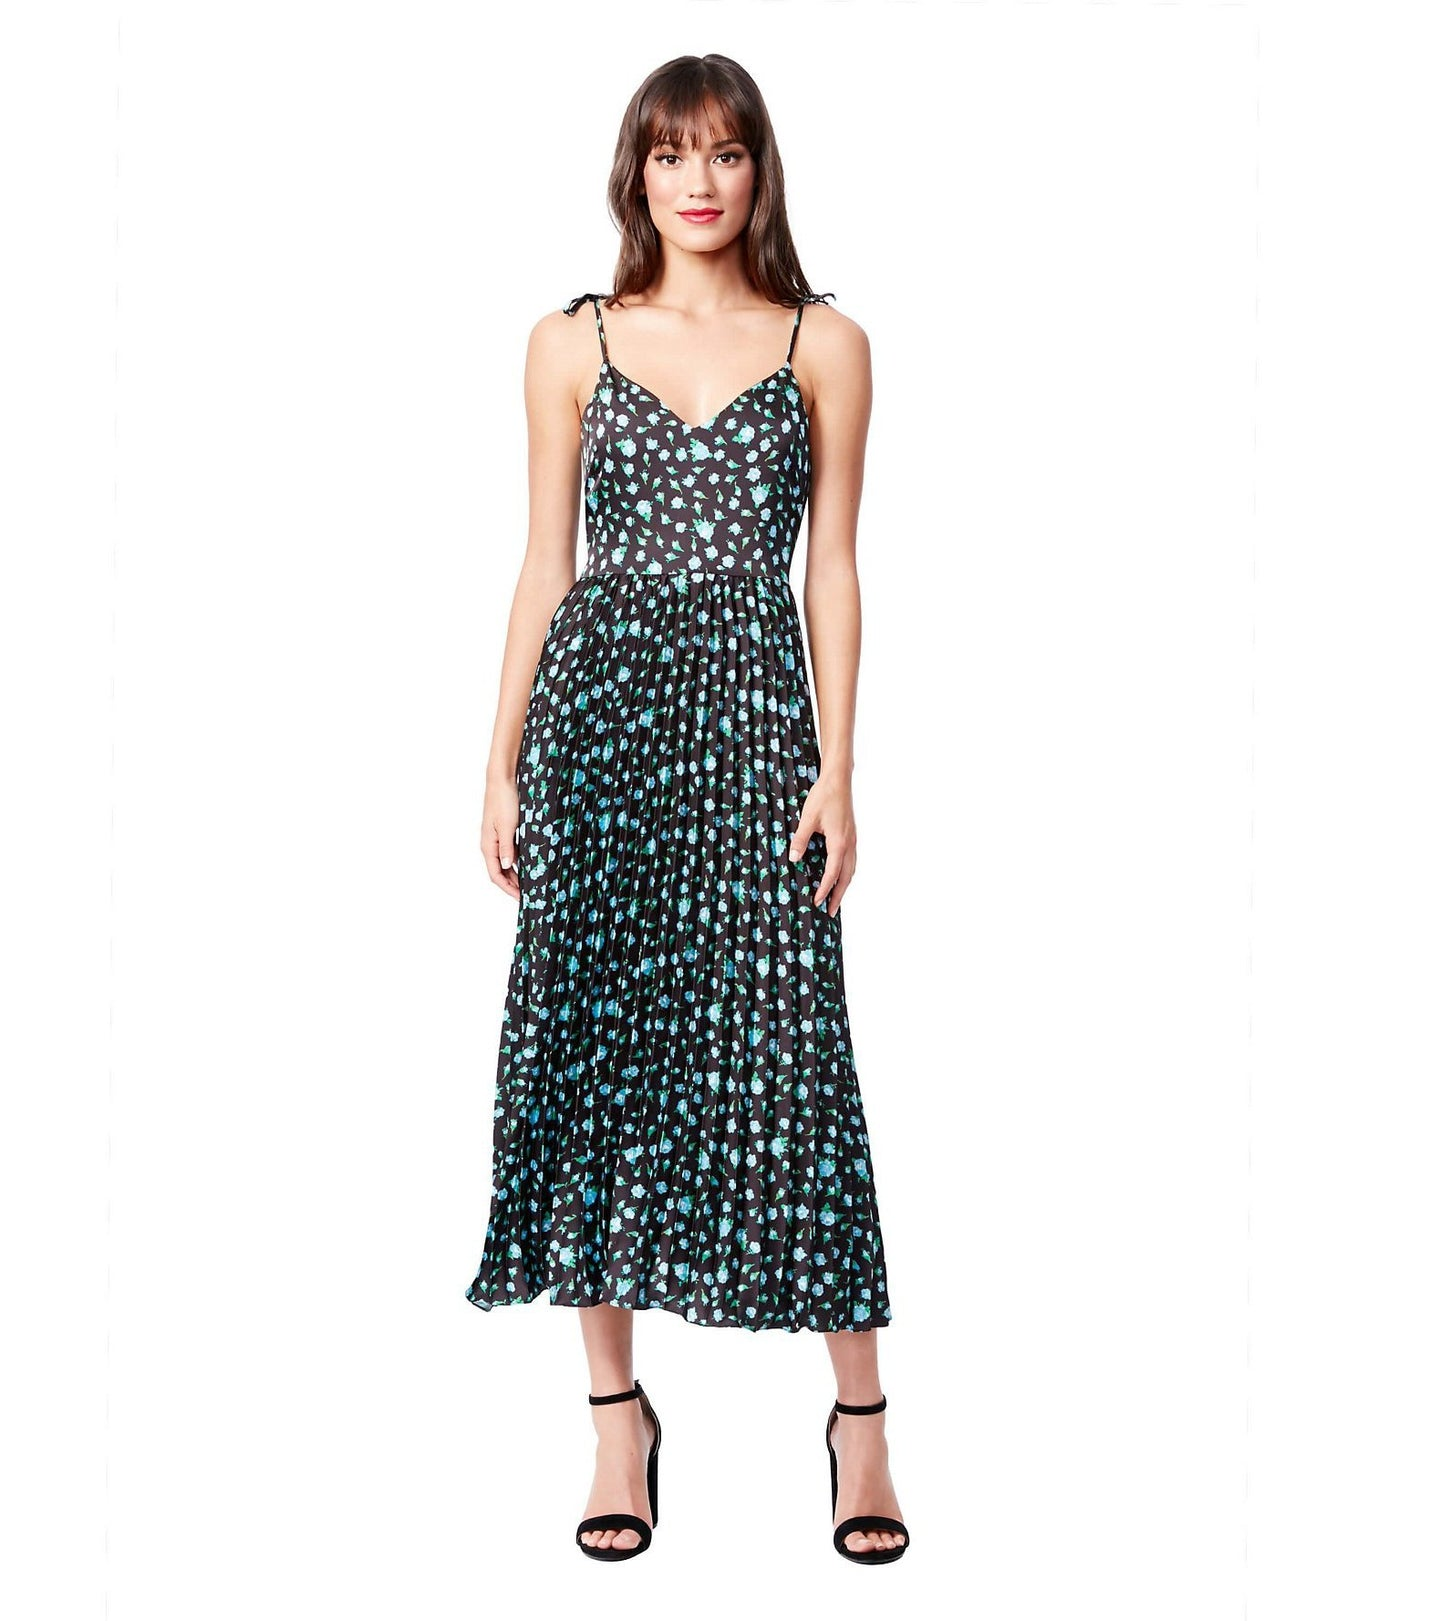 PRETTY PLEATS FLORAL DRESS BLACK MULTI - APPAREL - Betsey Johnson